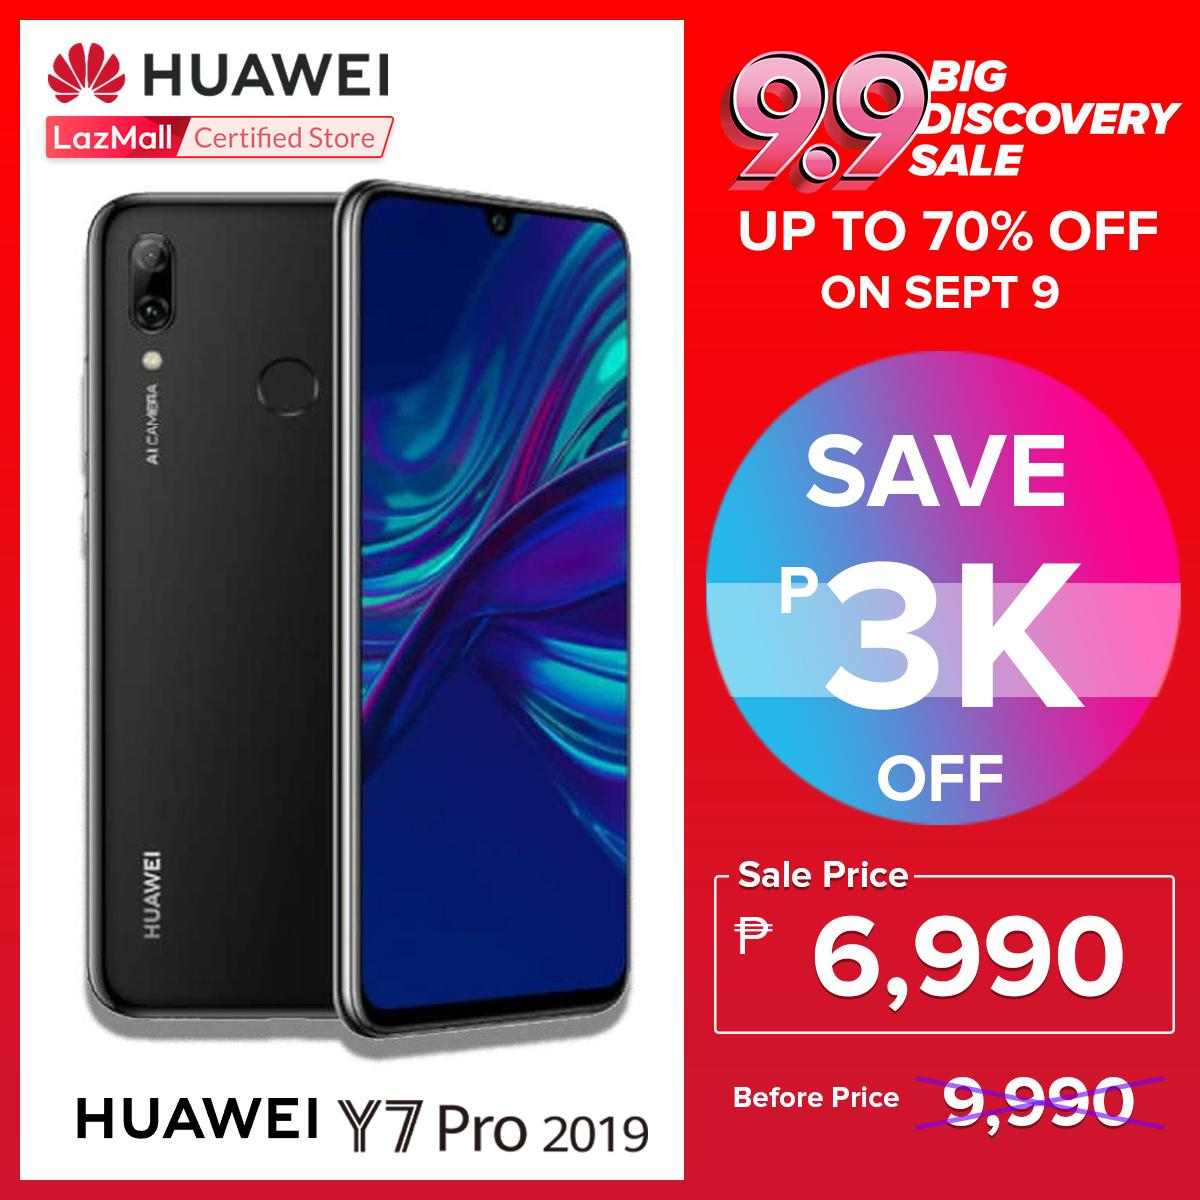 Huawei Y7 Pro 2019 32GB/3GB with Free Huawei Stainless Steel Thermos